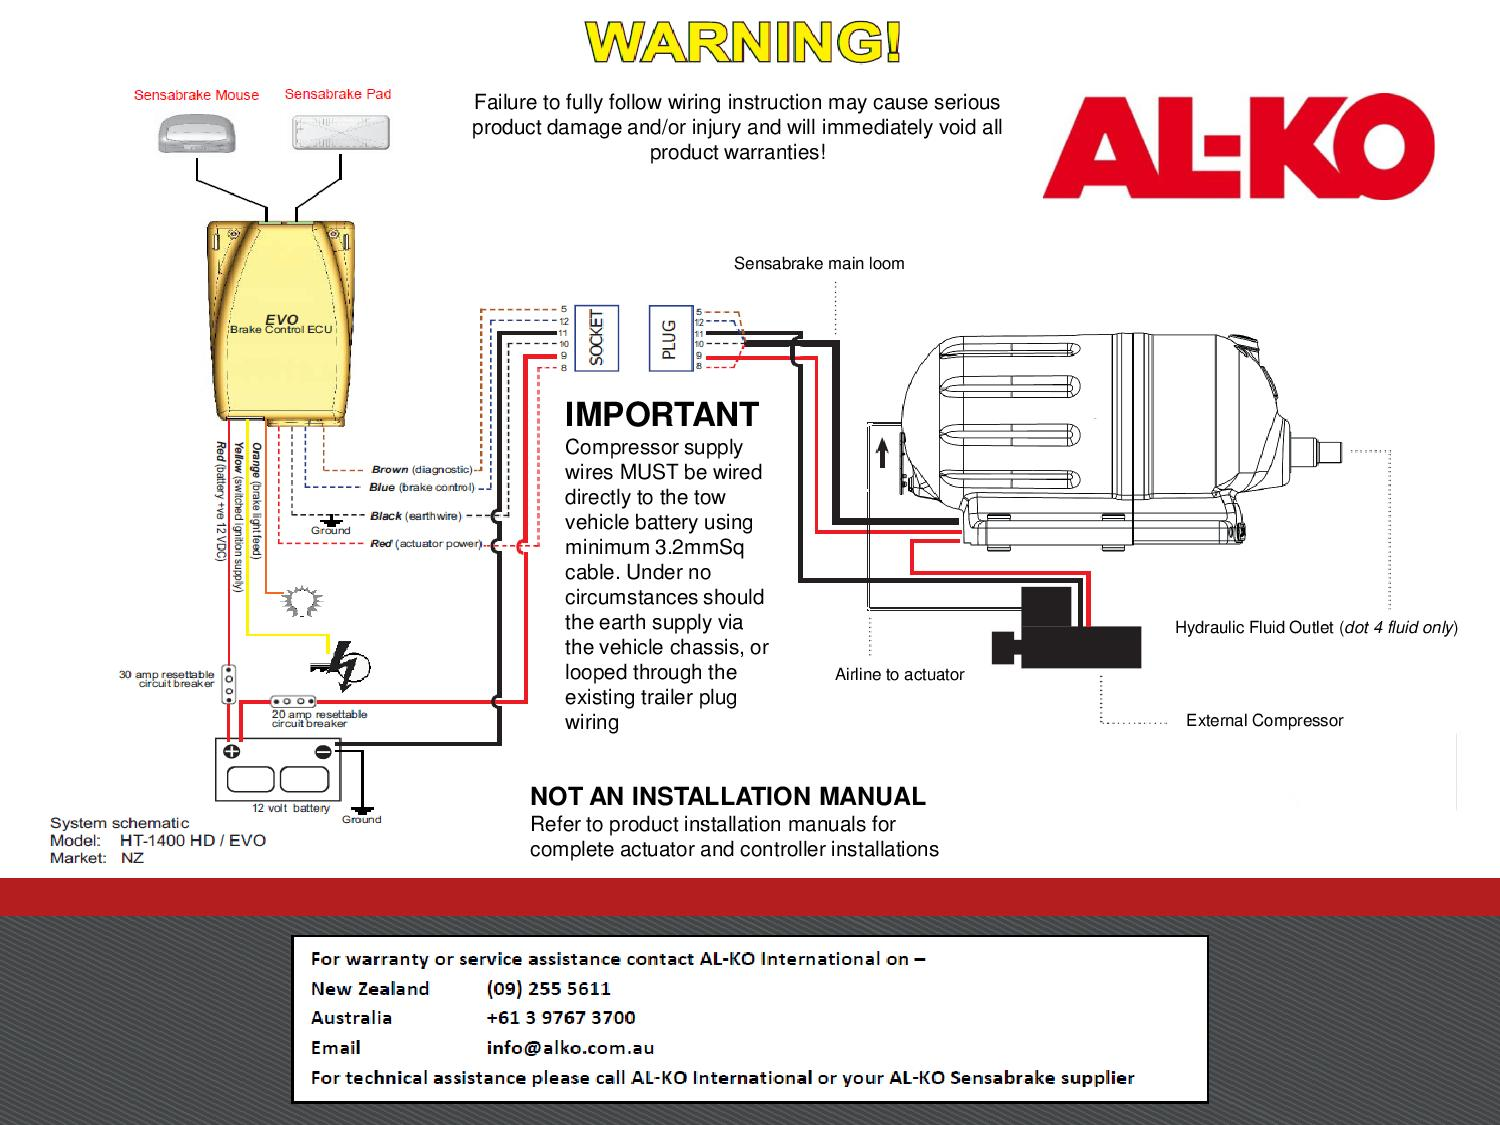 actuator wiring diagram limit switch ht1400 hd by myboatingshop com issuu